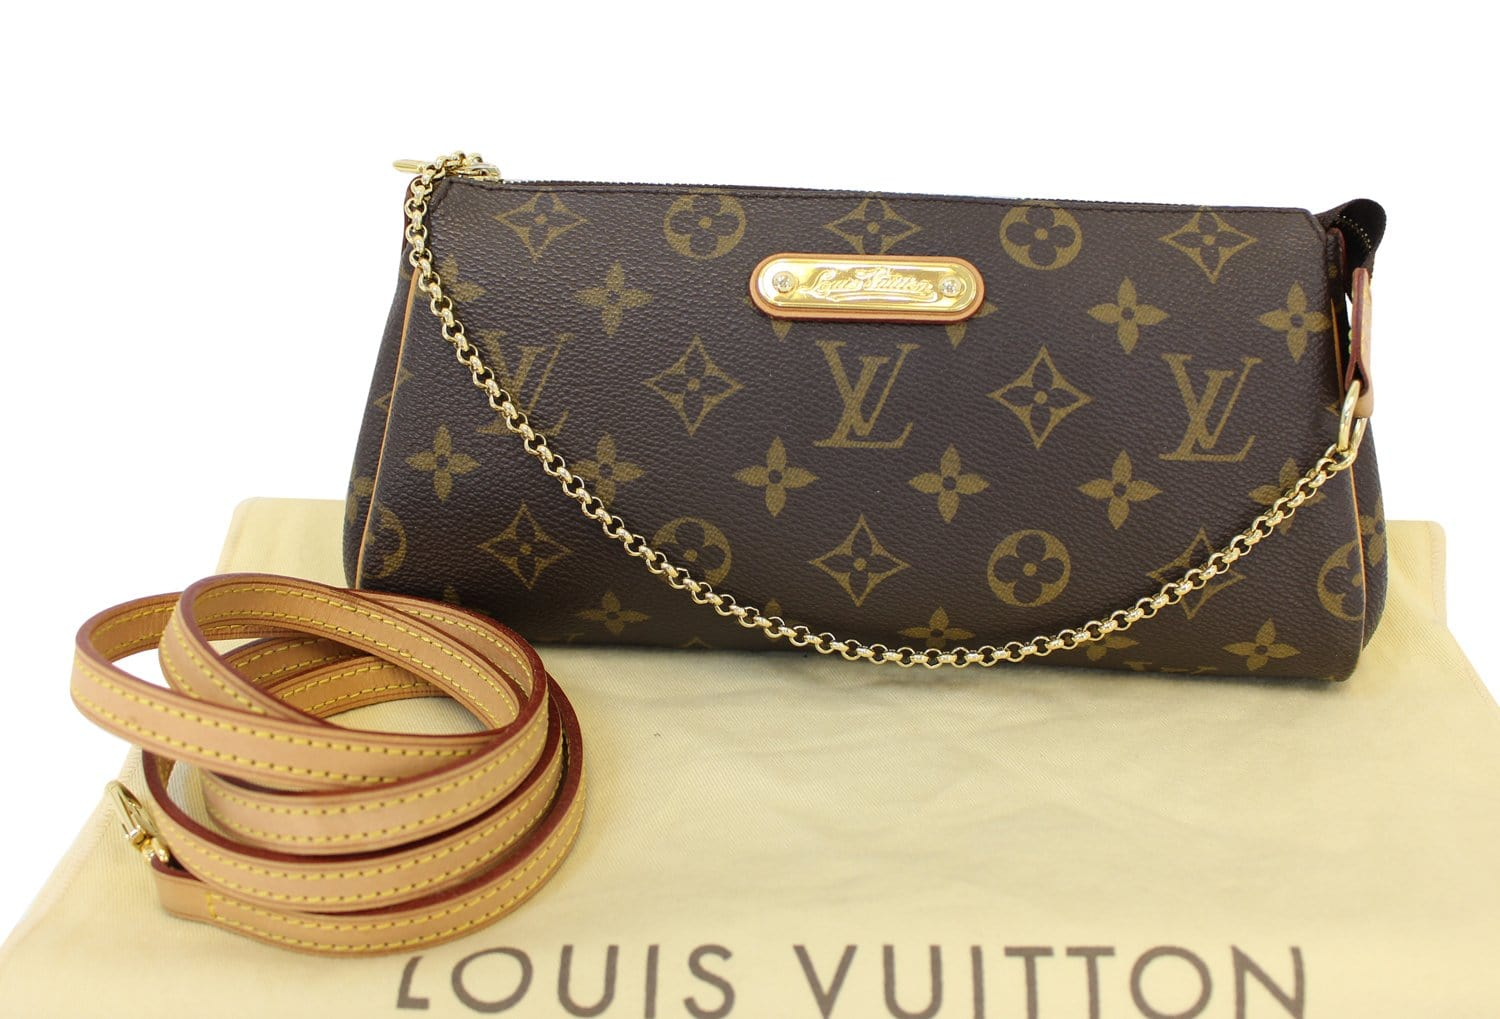 036ab6bc190a Authentic LOUIS VUITTON Monogram Canvas Eva Clutch Bag TT1579